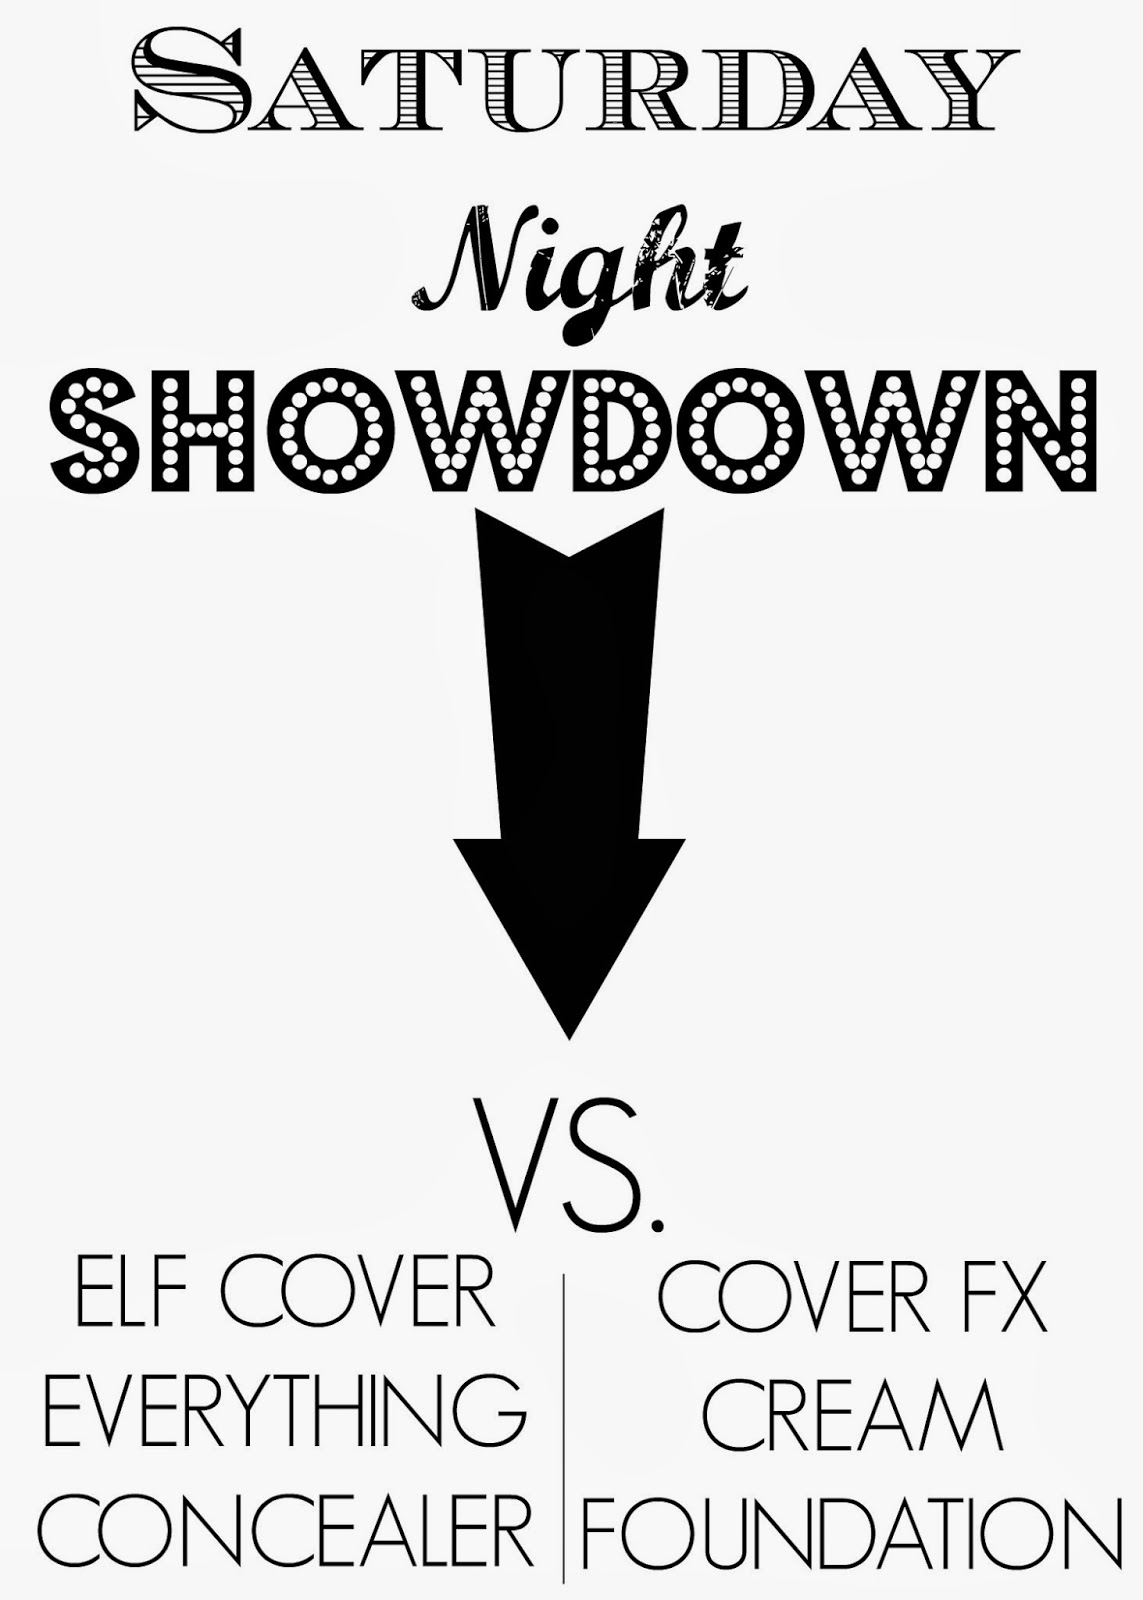 Elf cover everything concealer VS Cover FX Foundation